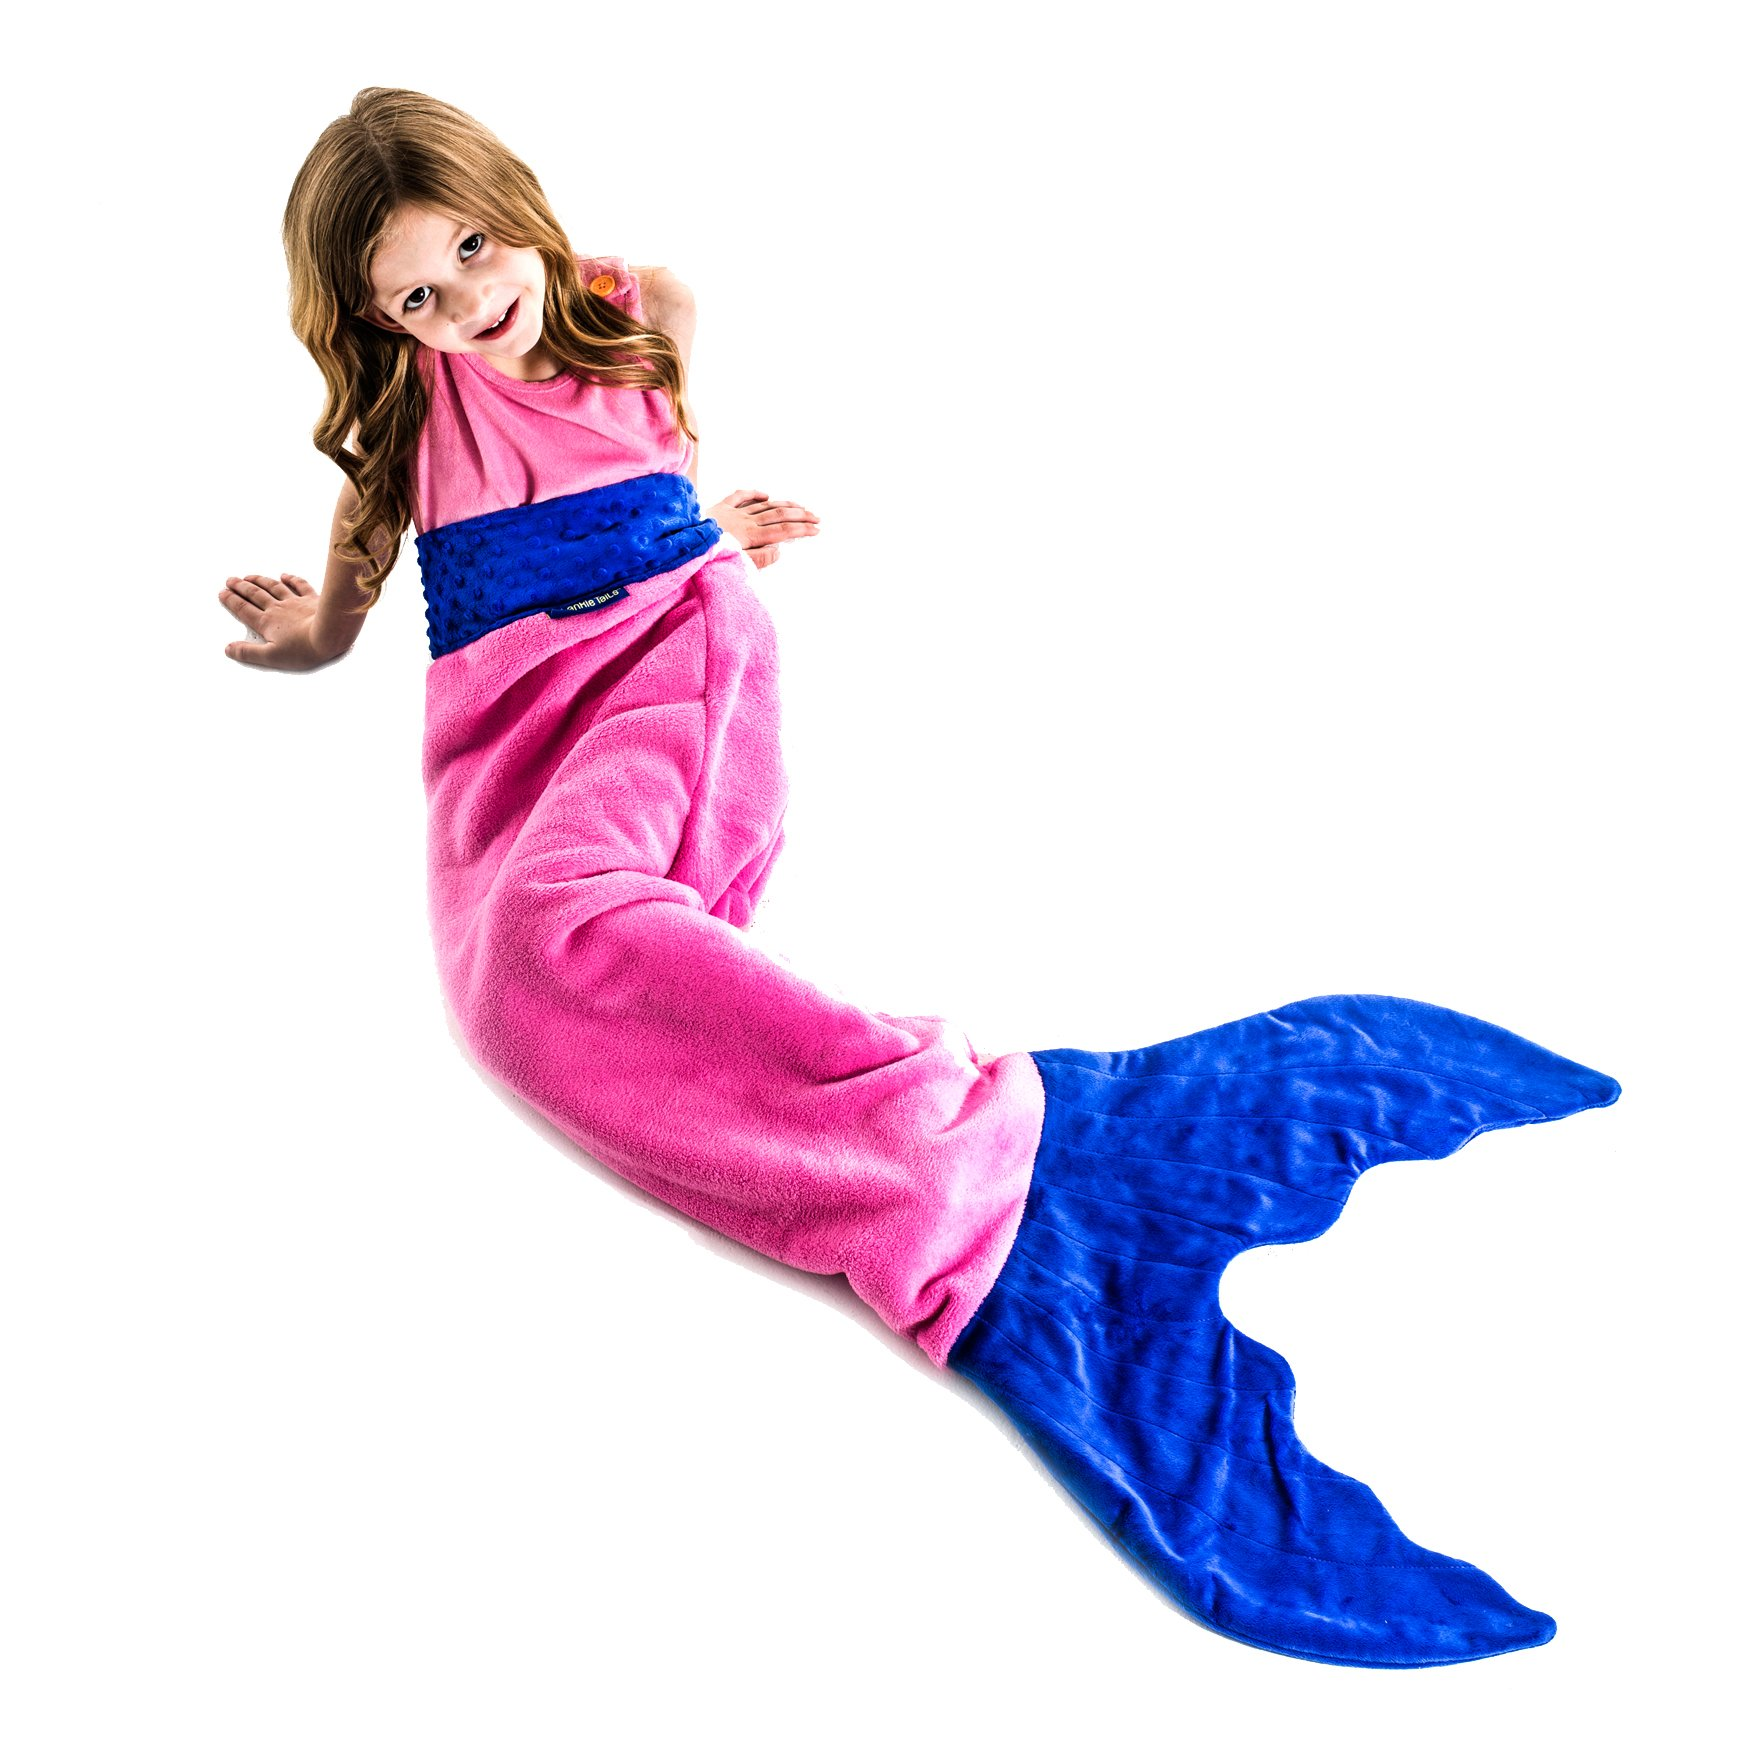 Mermaid Blanket for Kids - Fun, Playful Design Lets Kids Climb Inside - Double-Sided Soft Fleece Tail - The Original Mermaid Blanket in Colors Pink and Periwinkle